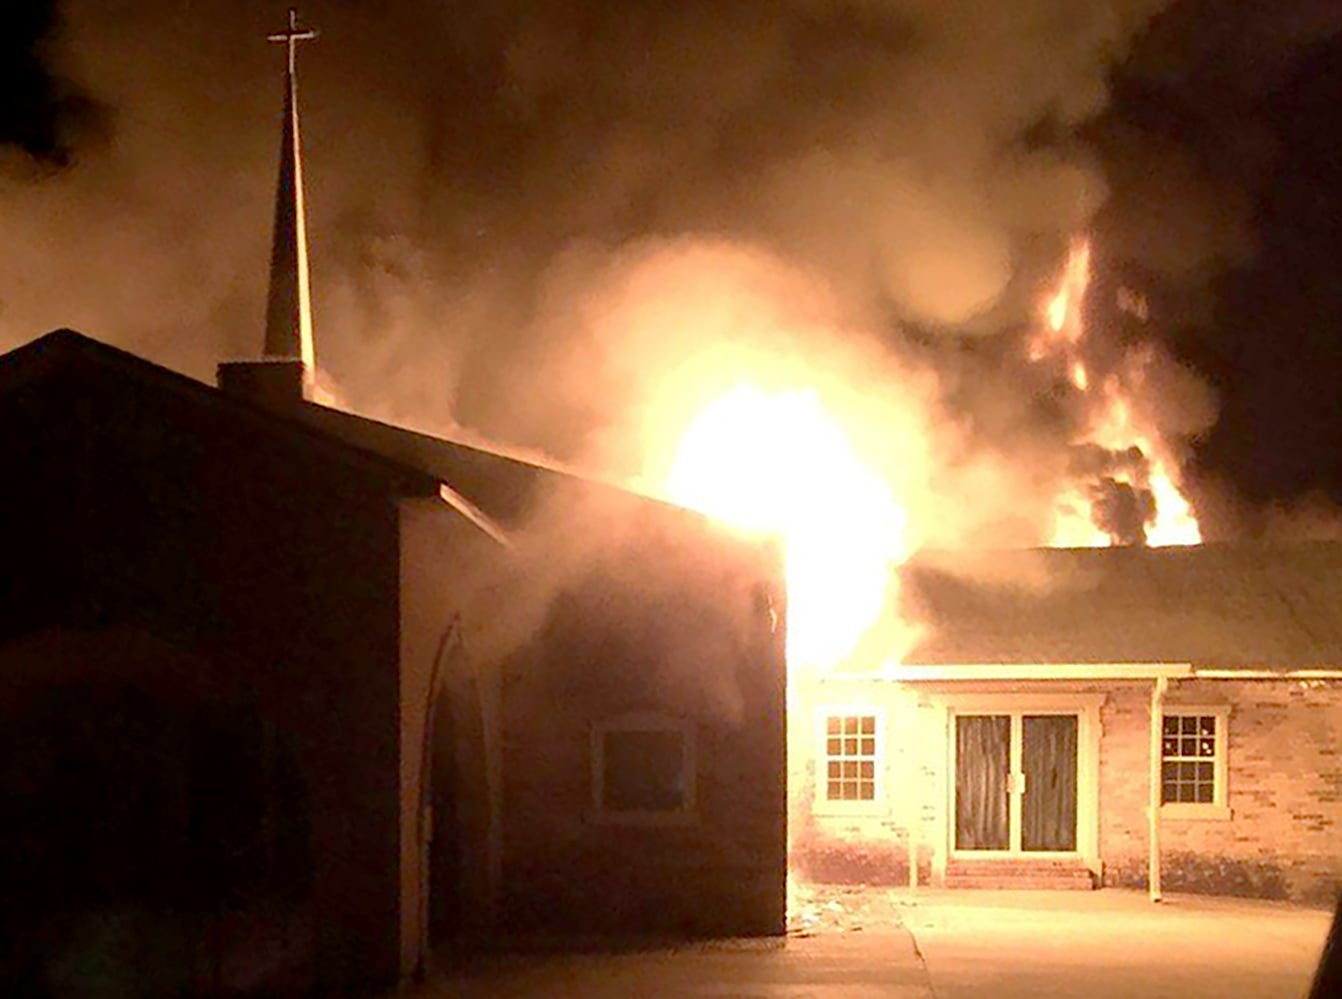 Greater Union Baptist Church fully engulfed in flames early Tuesday morning.